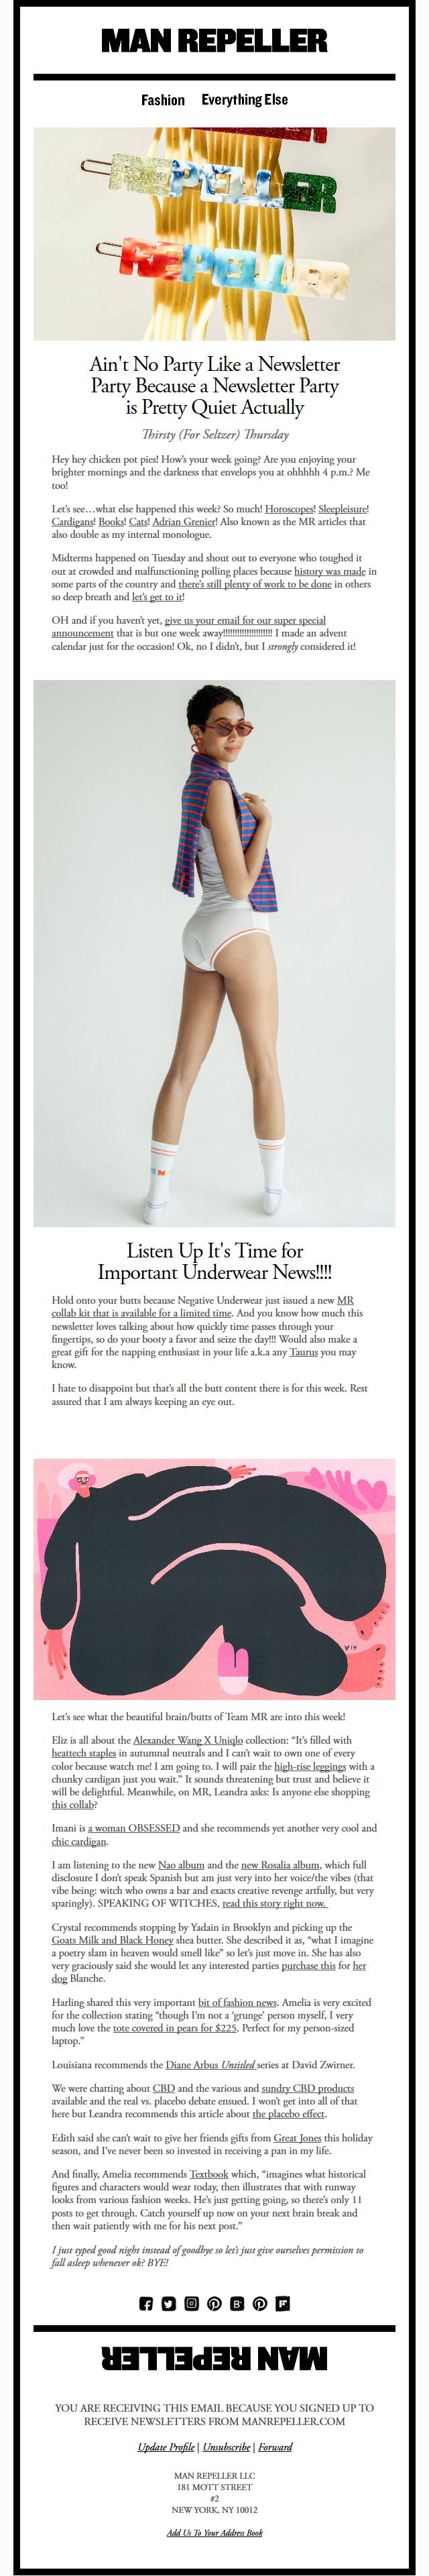 Ain't No Party Like a Newsletter Party Because a Newsletter Party is Pretty Quiet Actually